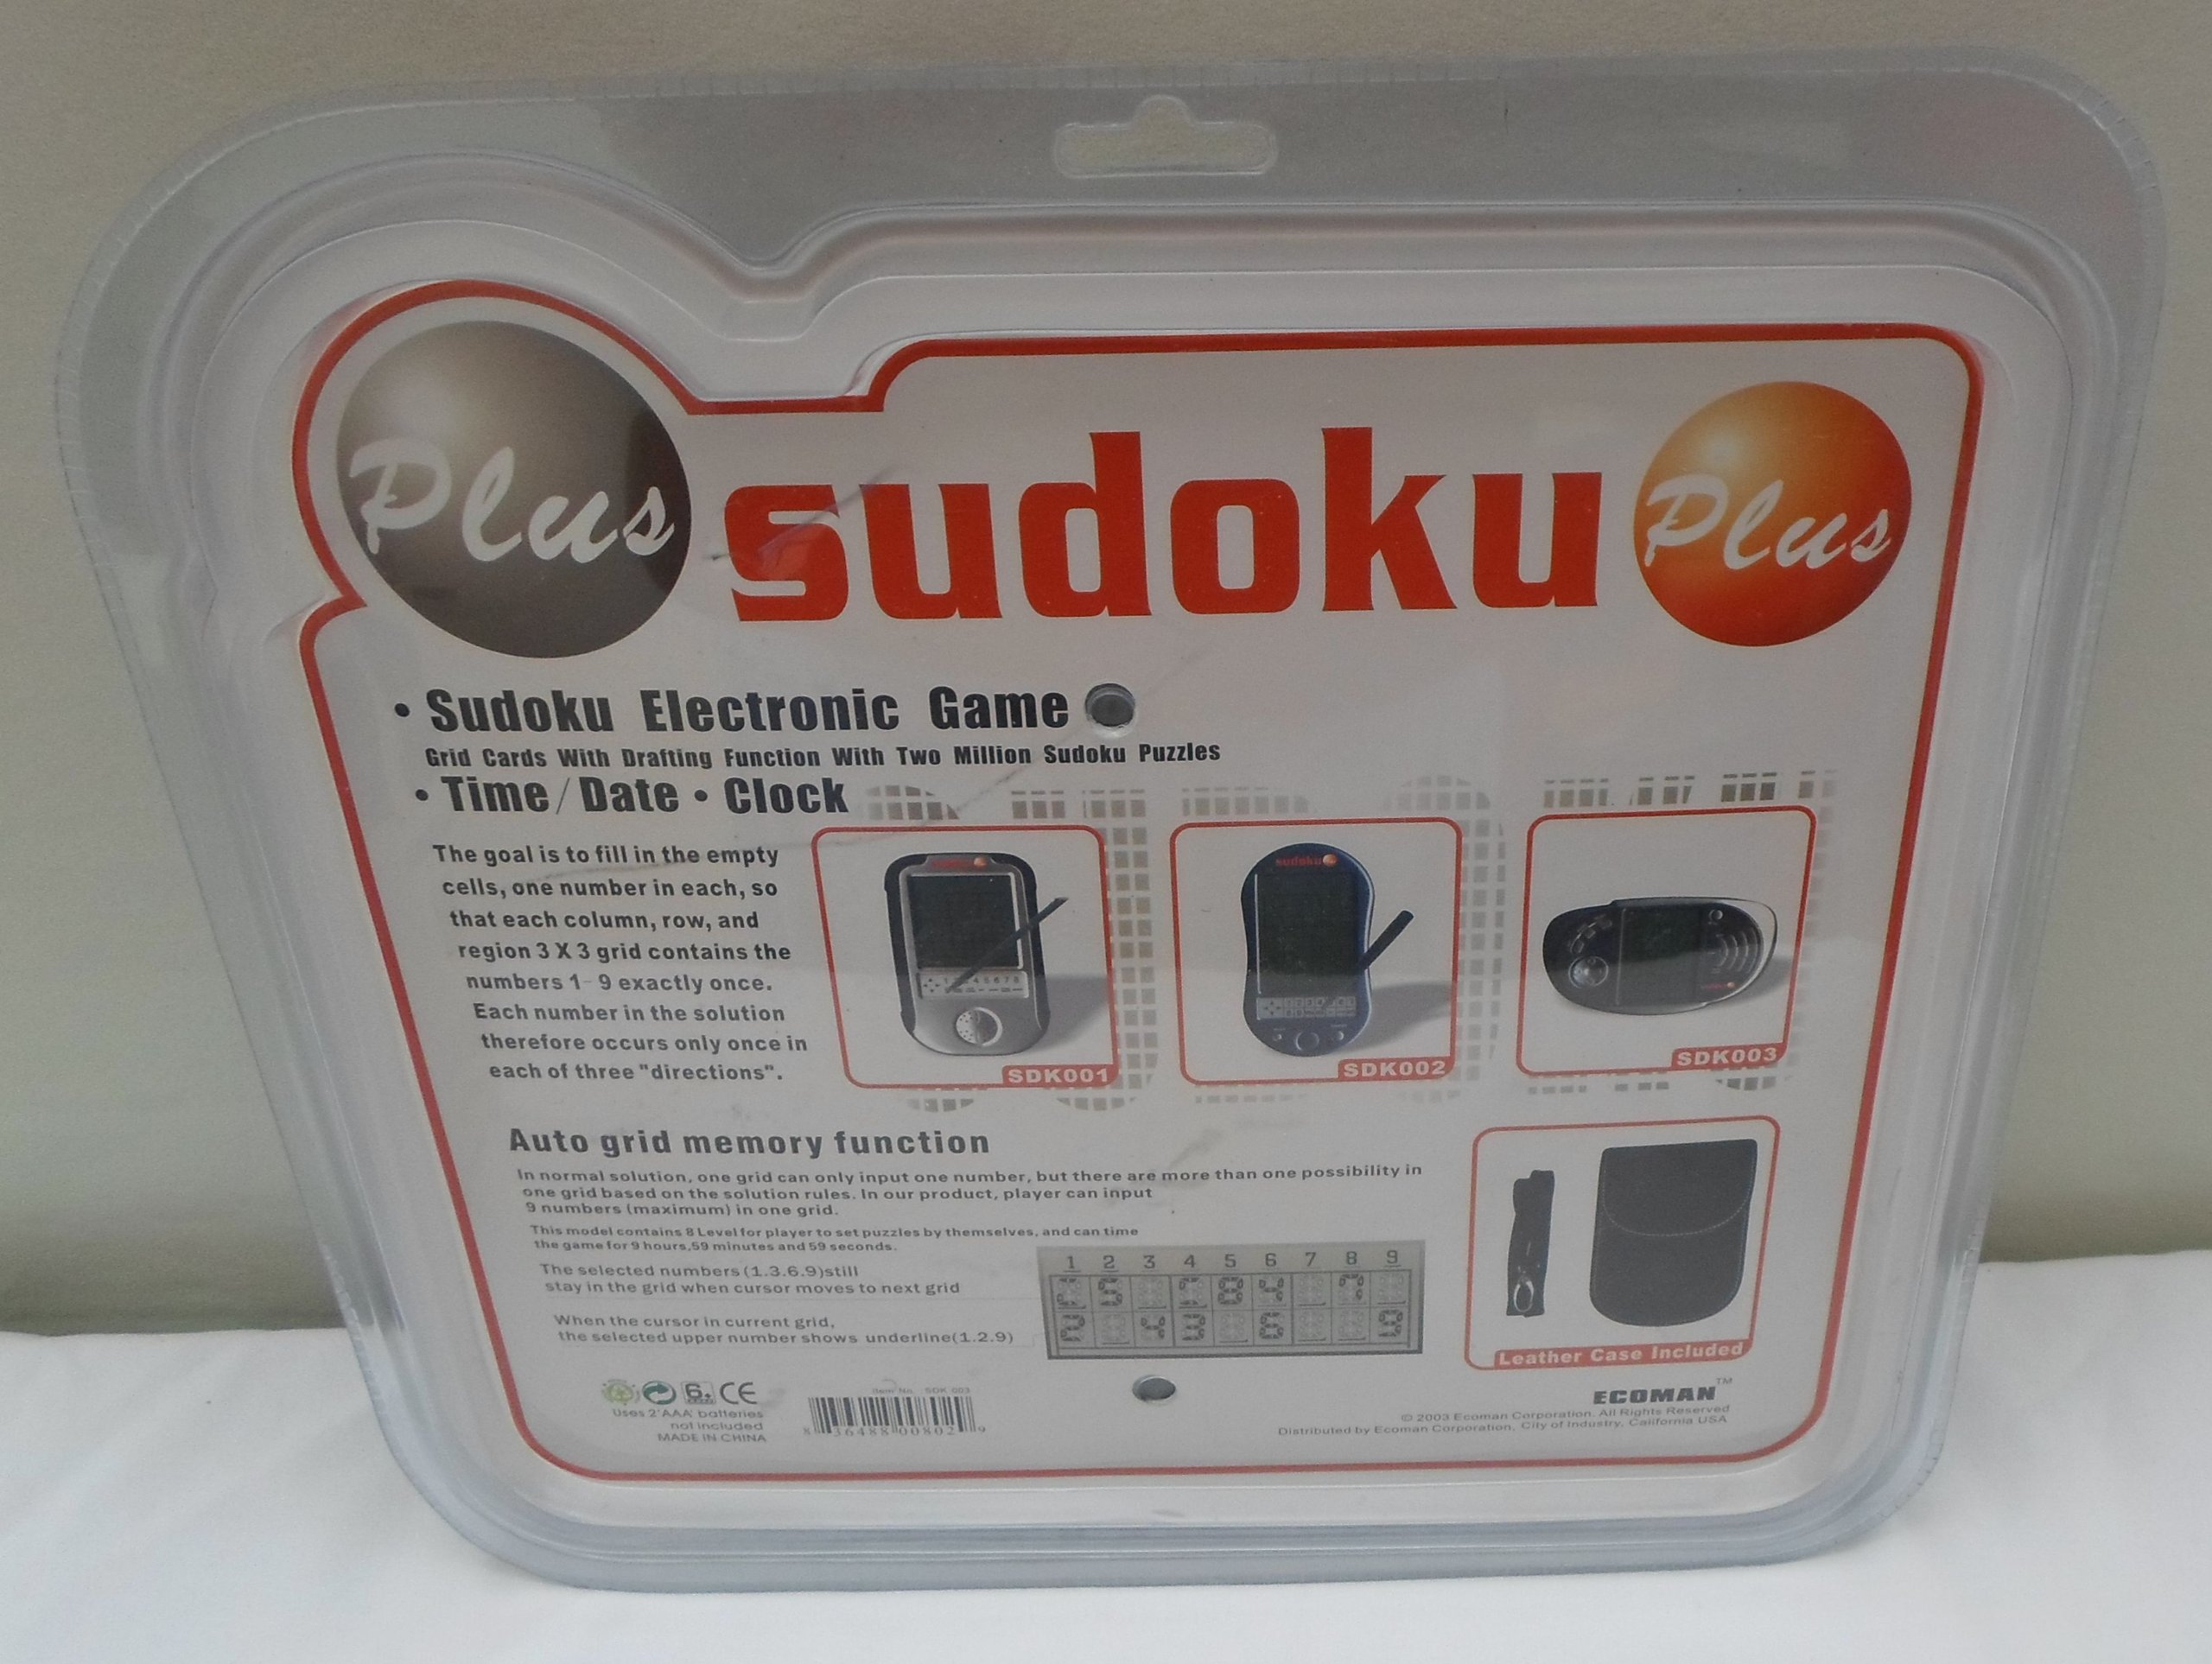 Sudoku Plus Electronic Game with 2,000,000 Games